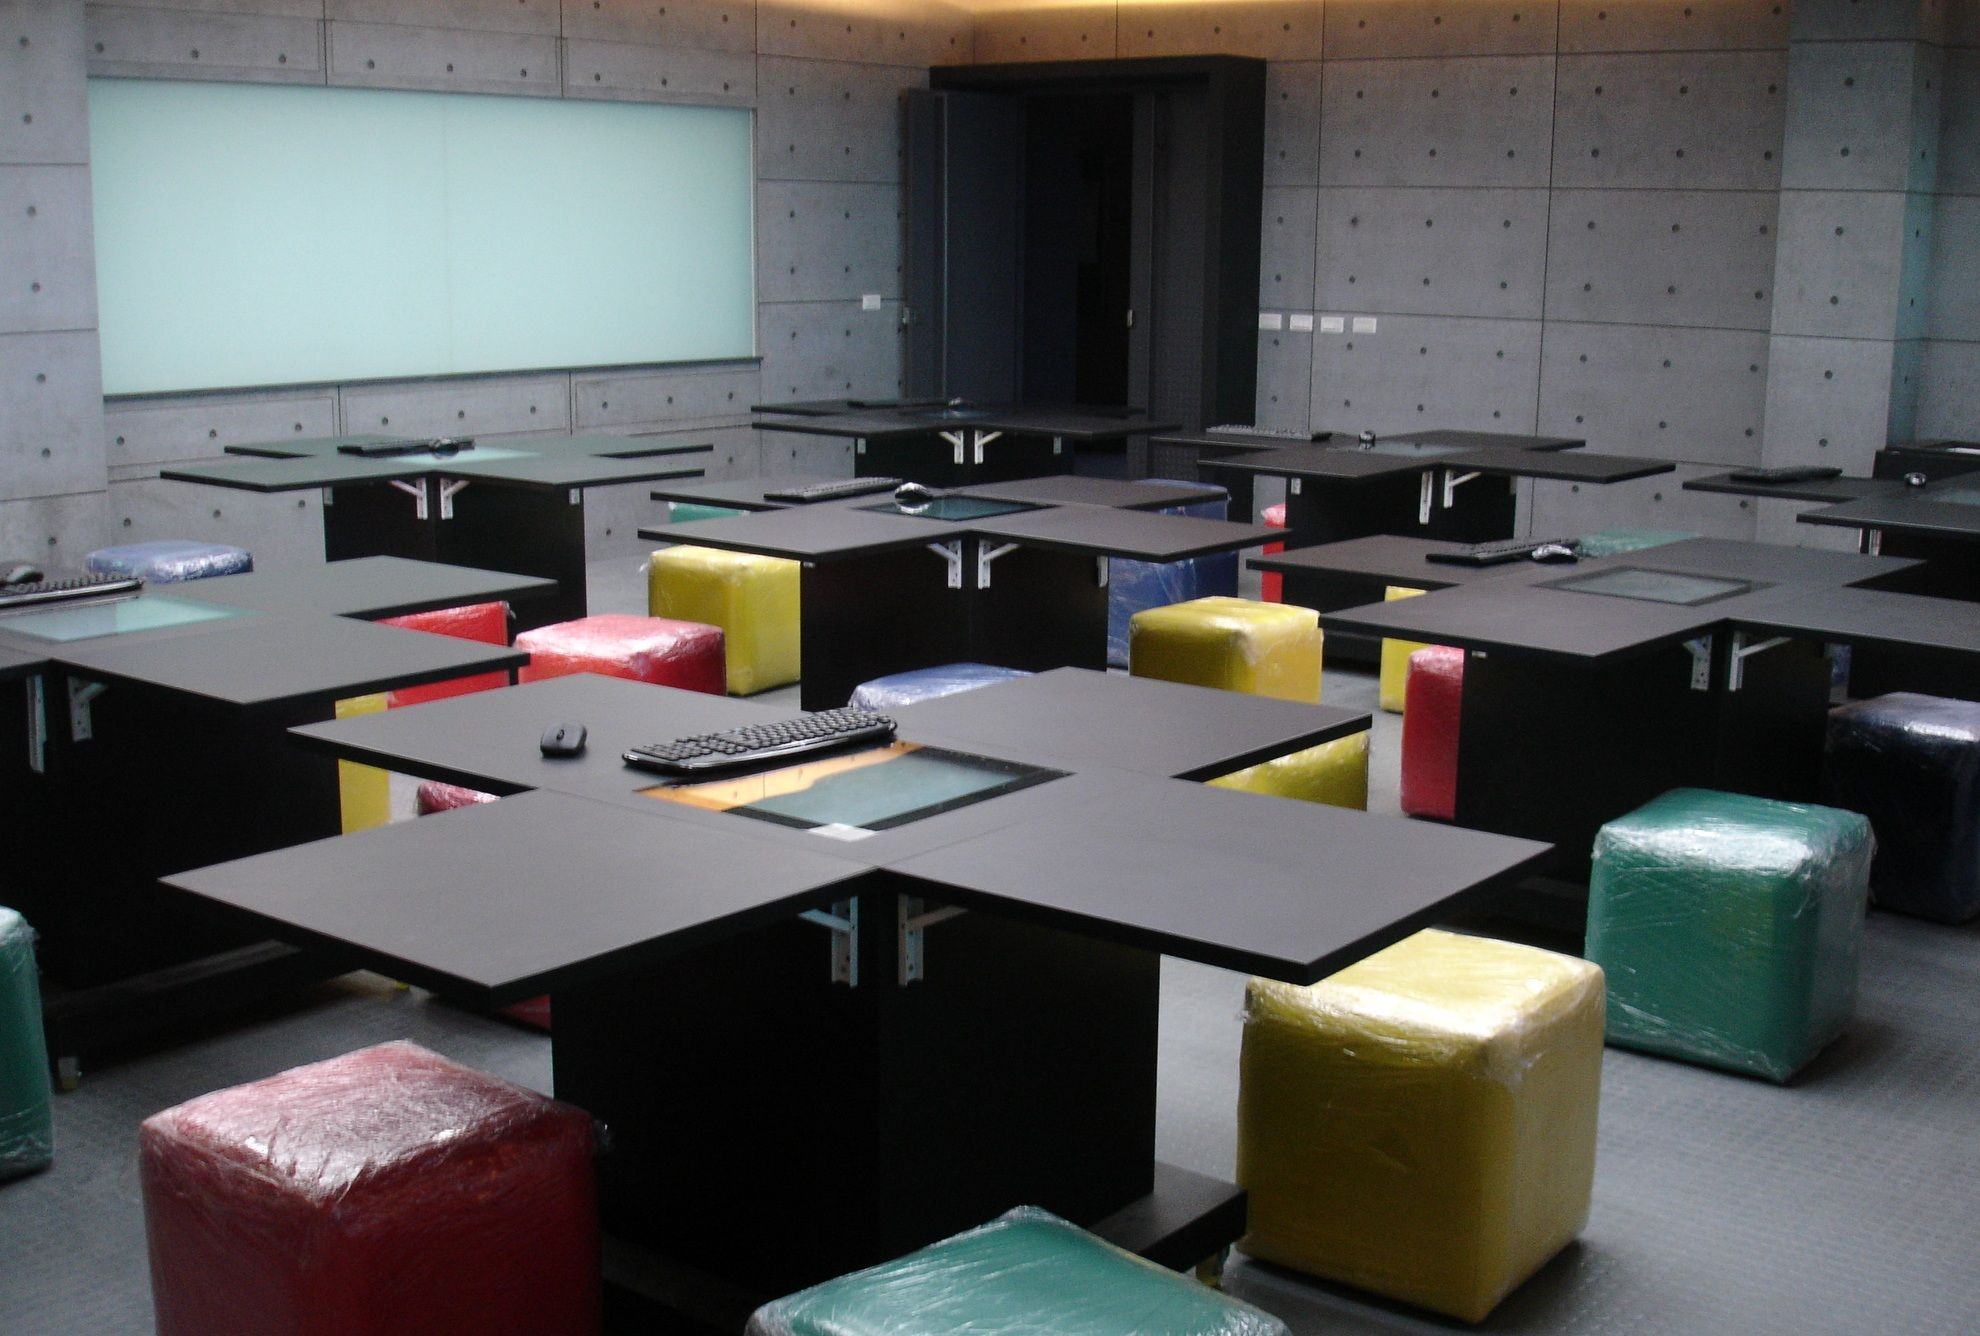 Classroom Design Of The Future : Zytronic touch sensors specified in multi user